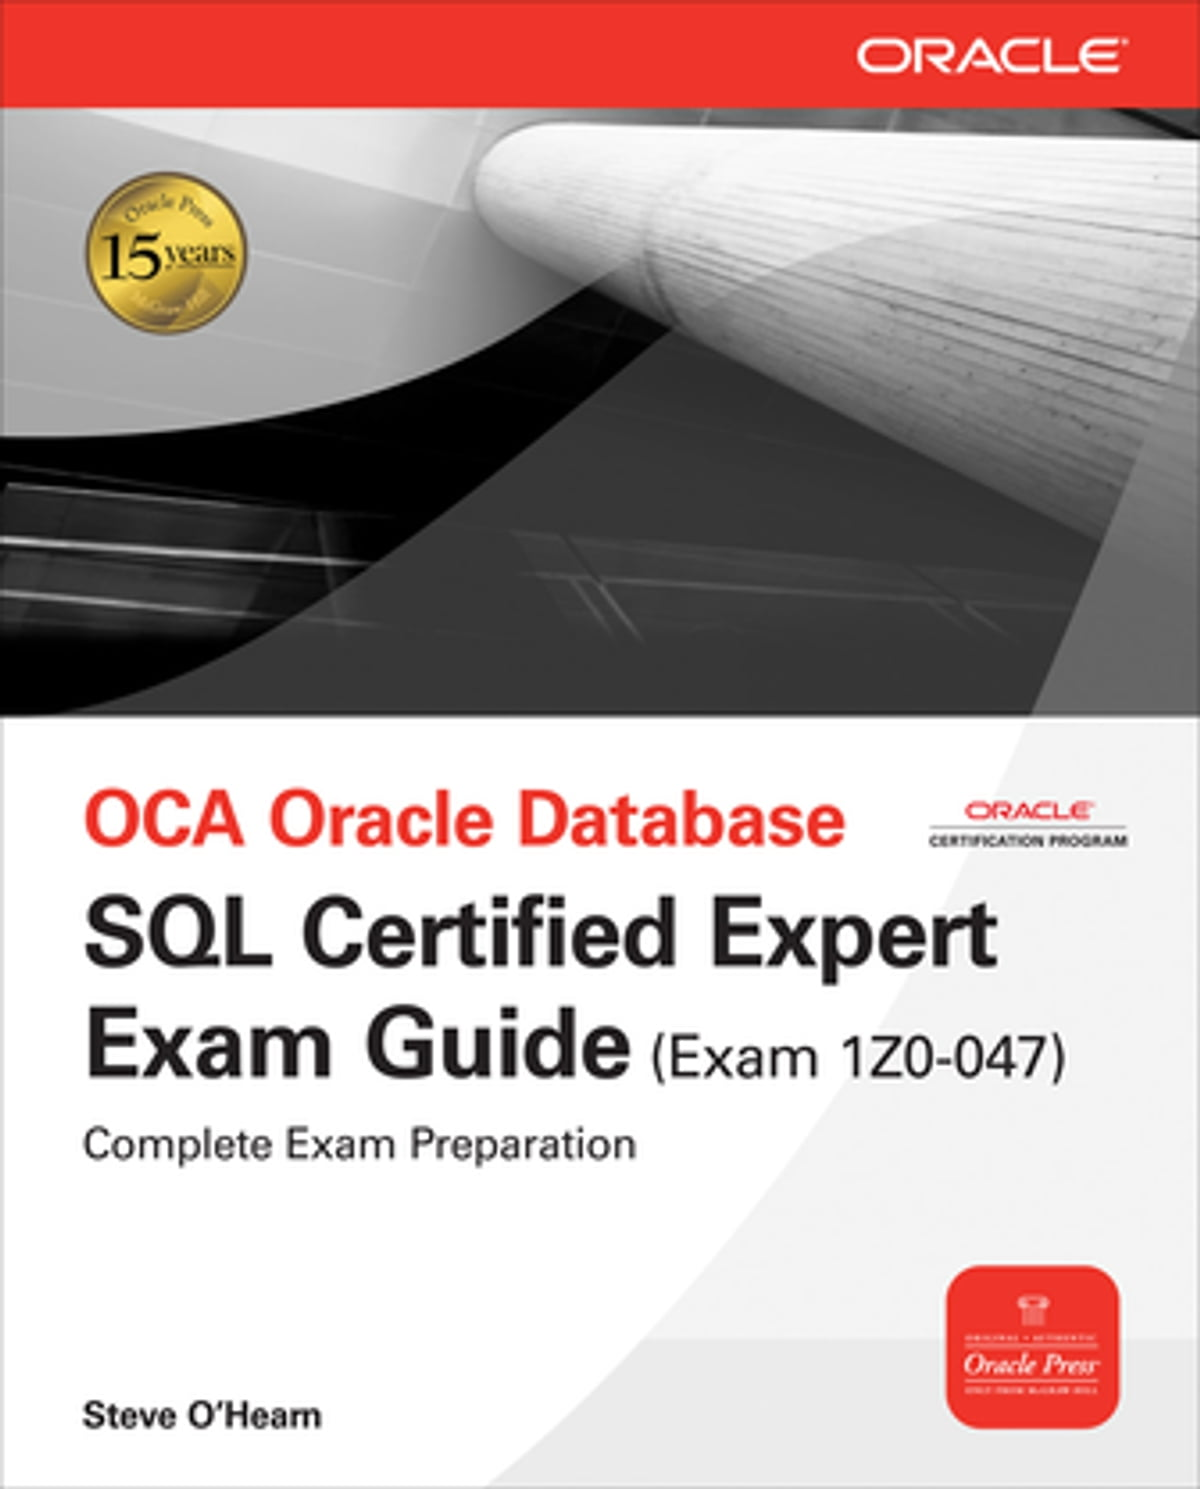 Oce oracle database sql certified expert exam guide exam 1z0 047 oce oracle database sql certified expert exam guide exam 1z0 047 ebook by steve ohearn 9780071614221 rakuten kobo xflitez Gallery